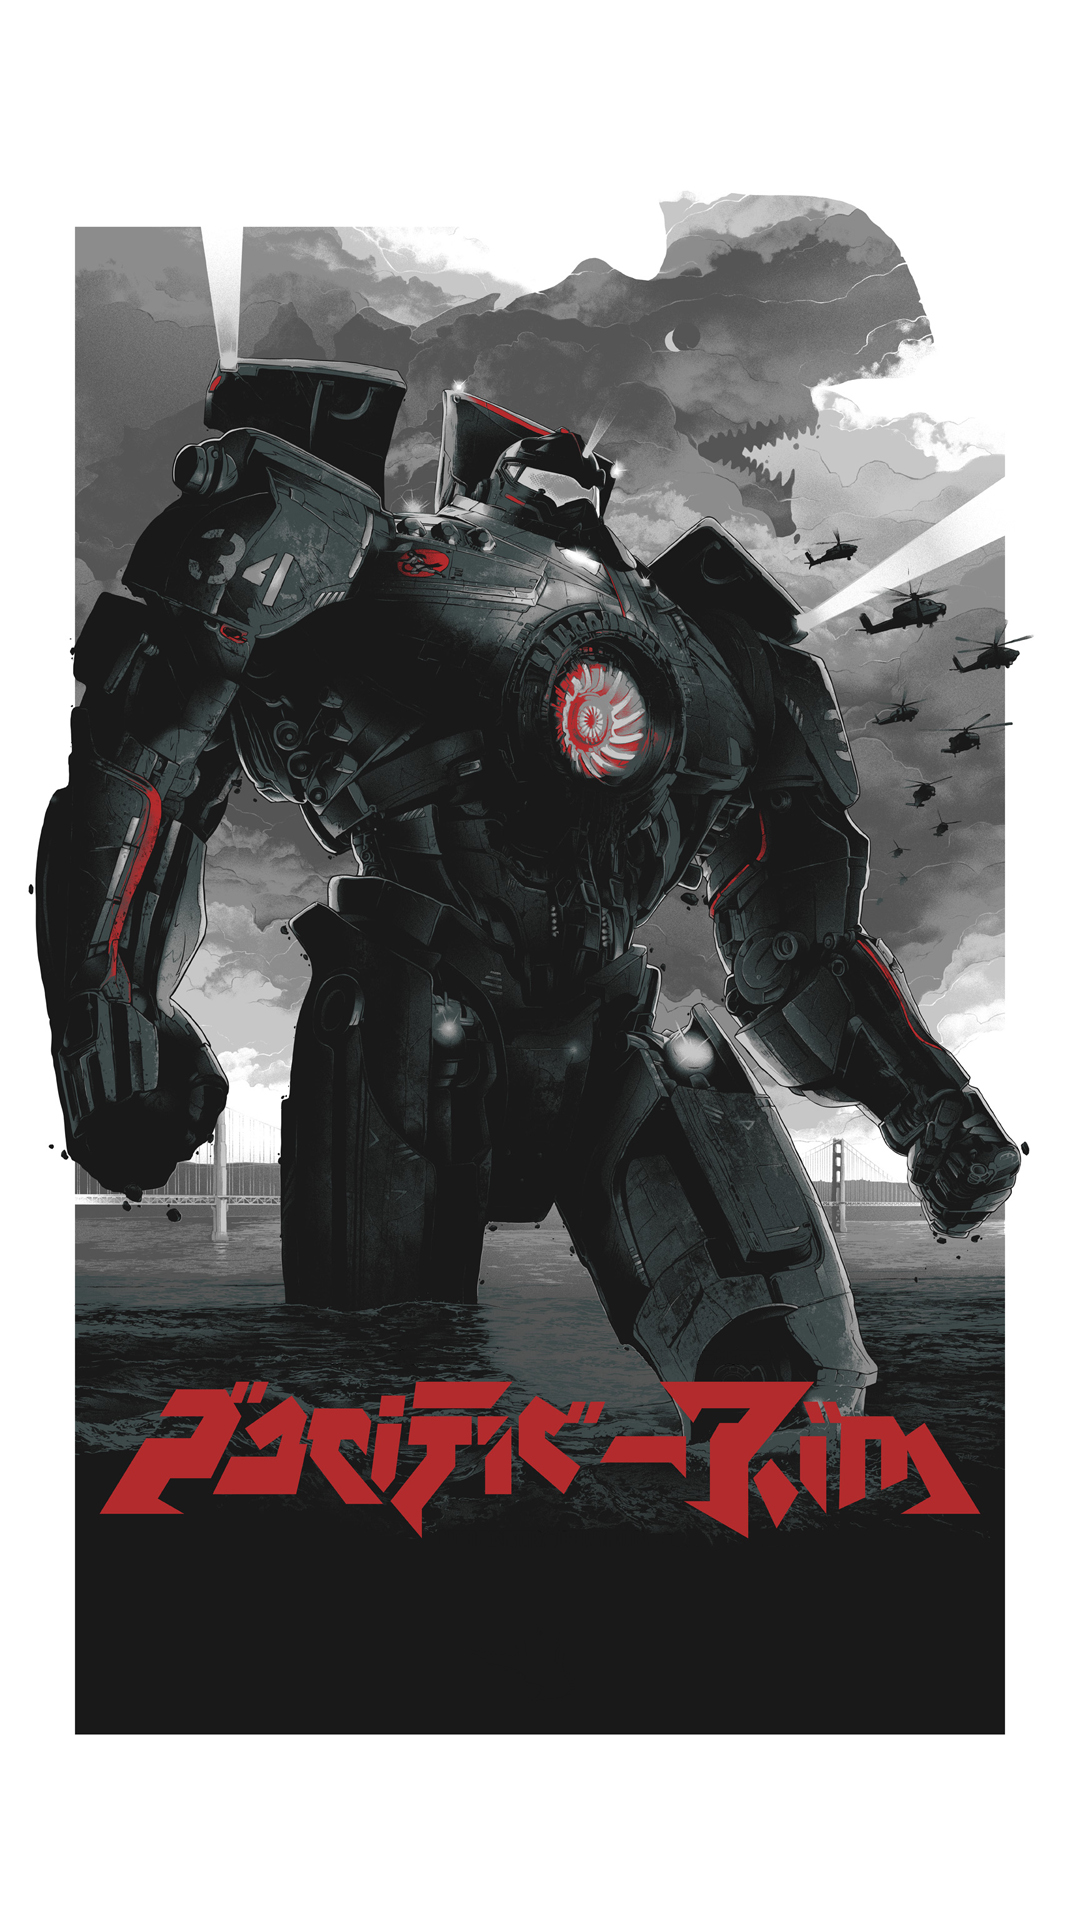 Pacific Rim htc one wallpaper